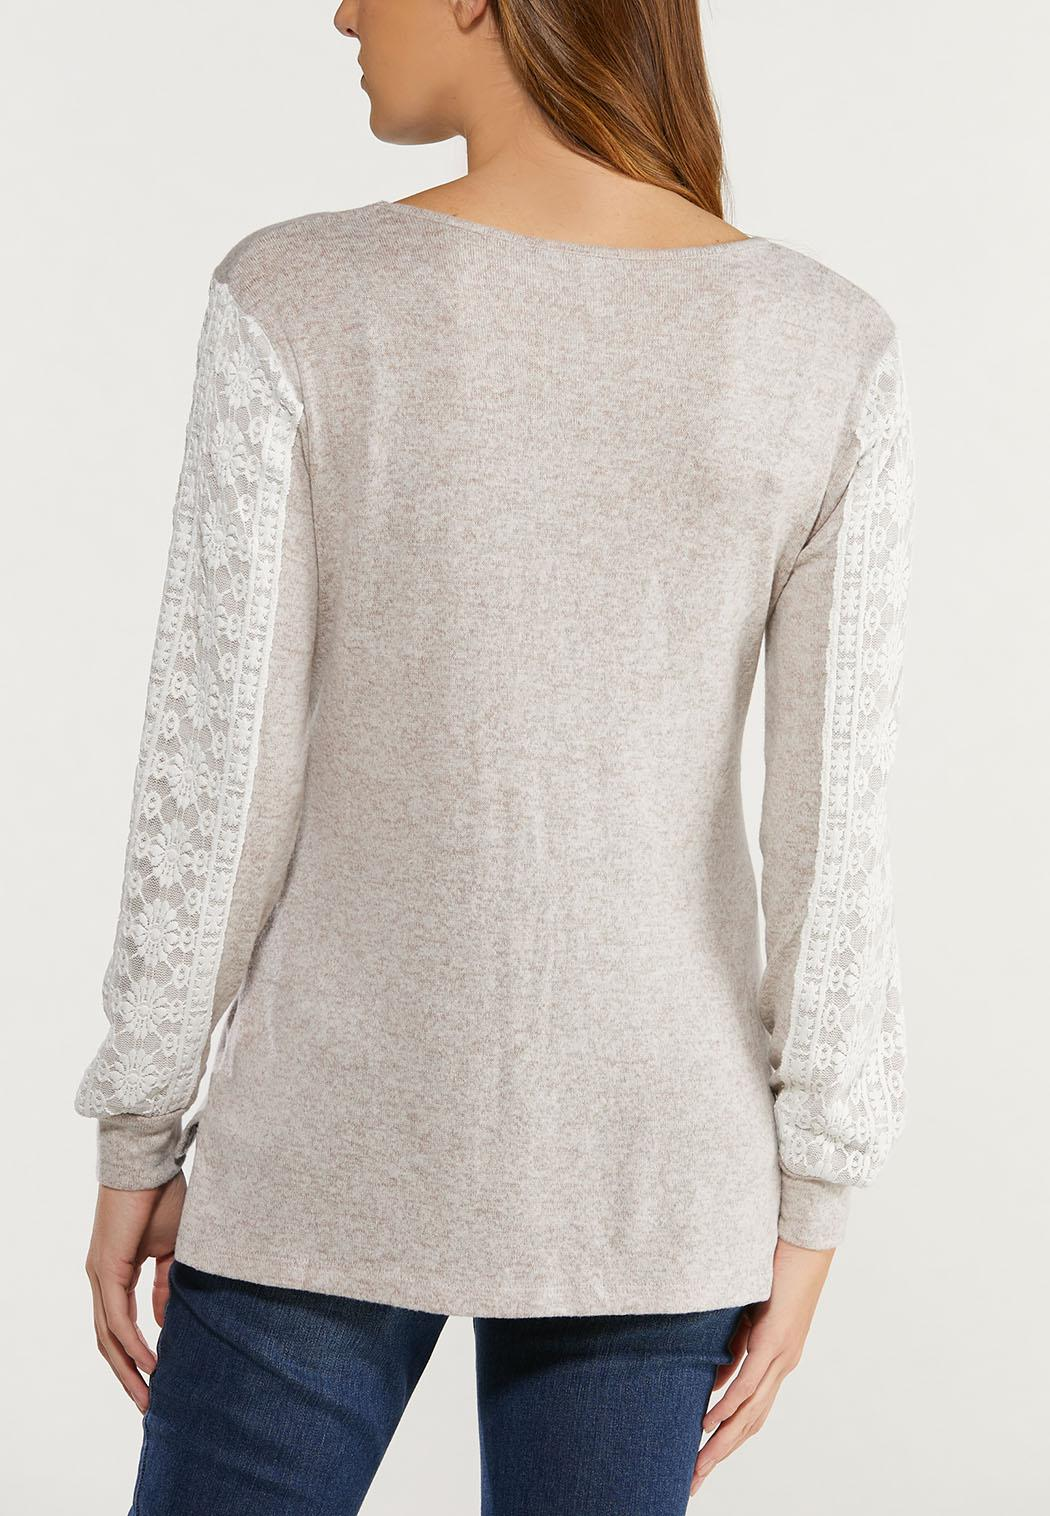 Oatmeal Lace Sleeve Top (Item #44476892)